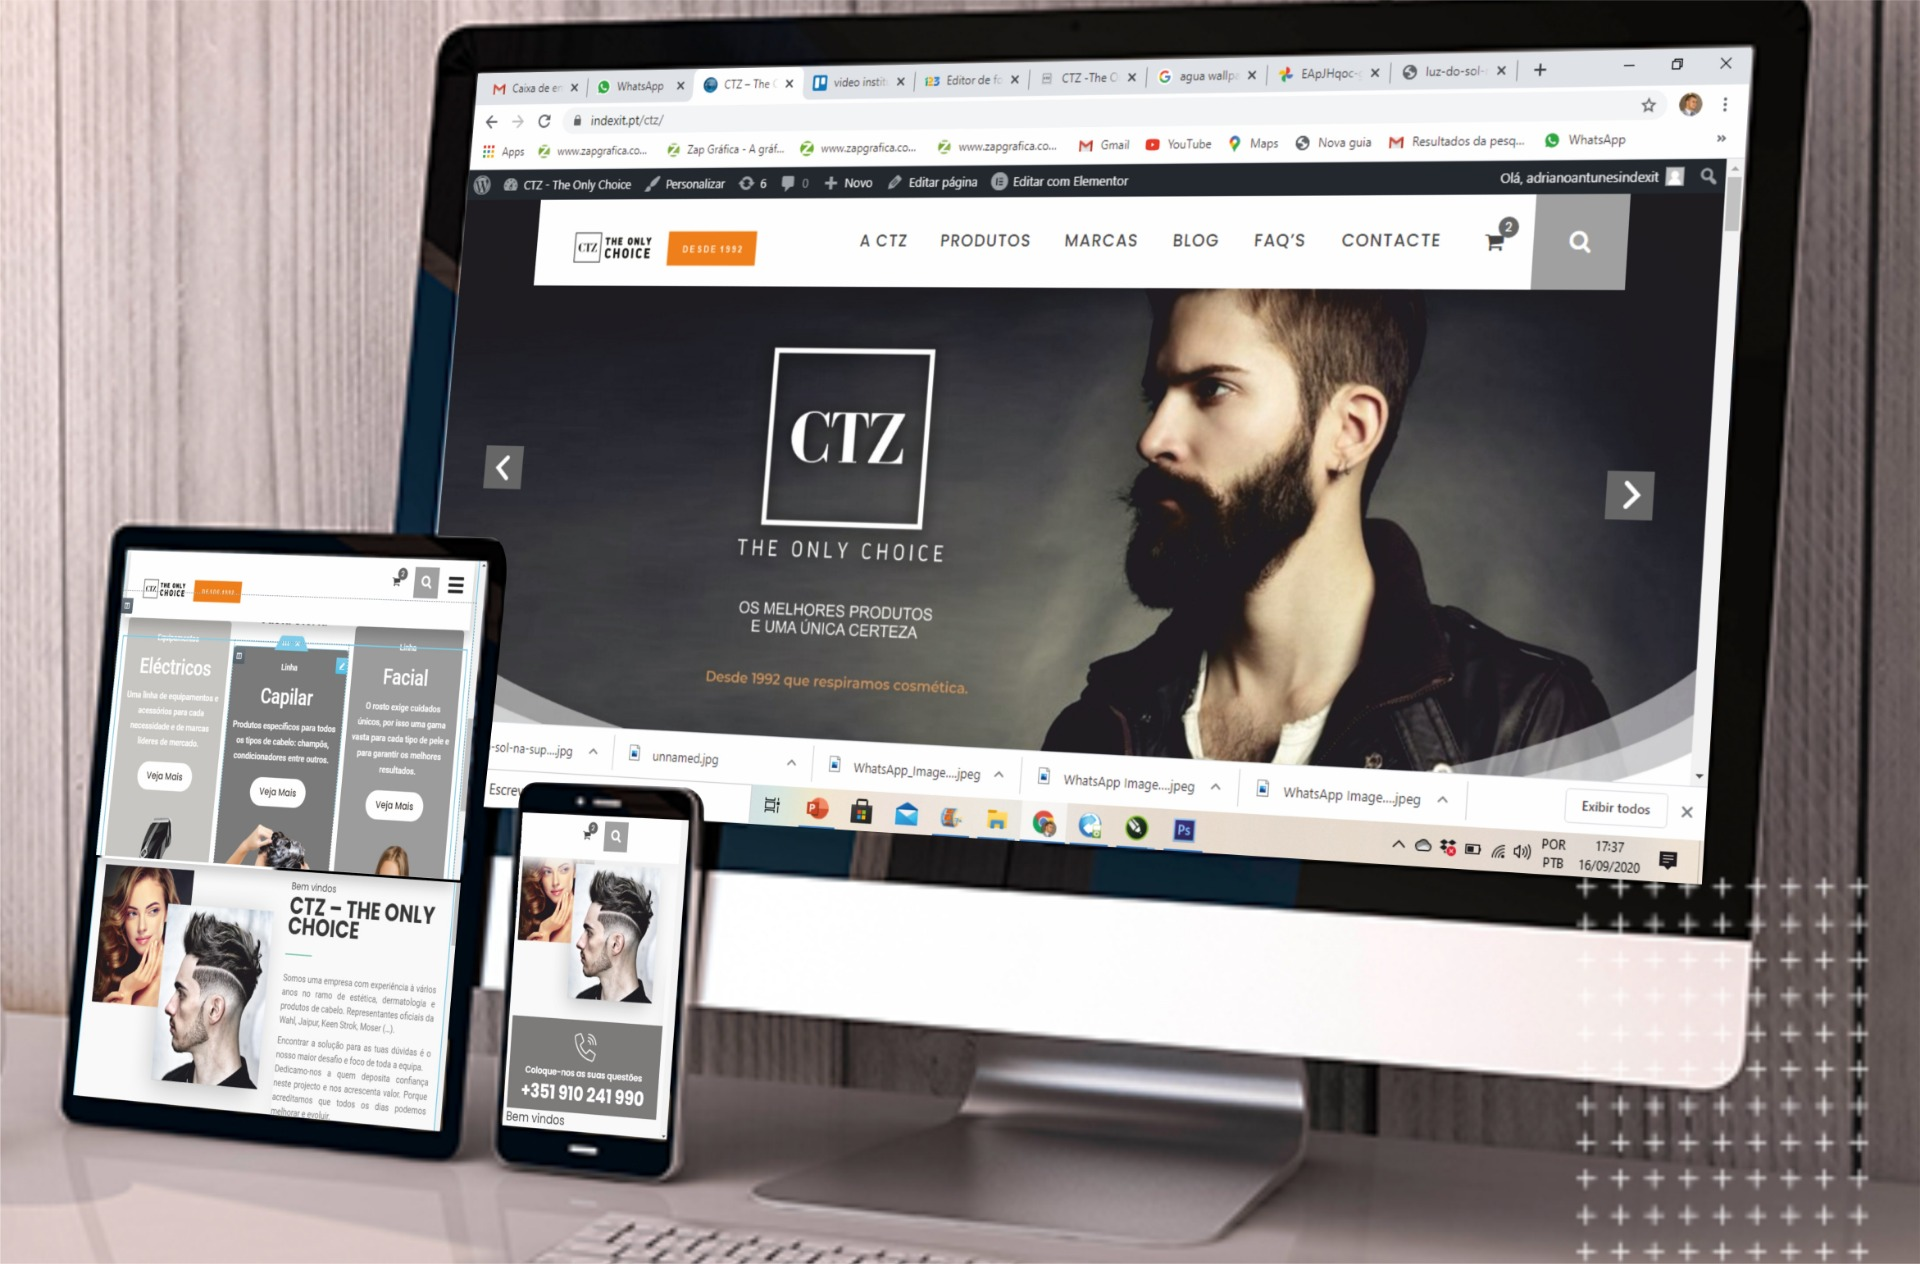 website CTZ – THE ONLY CHOICE